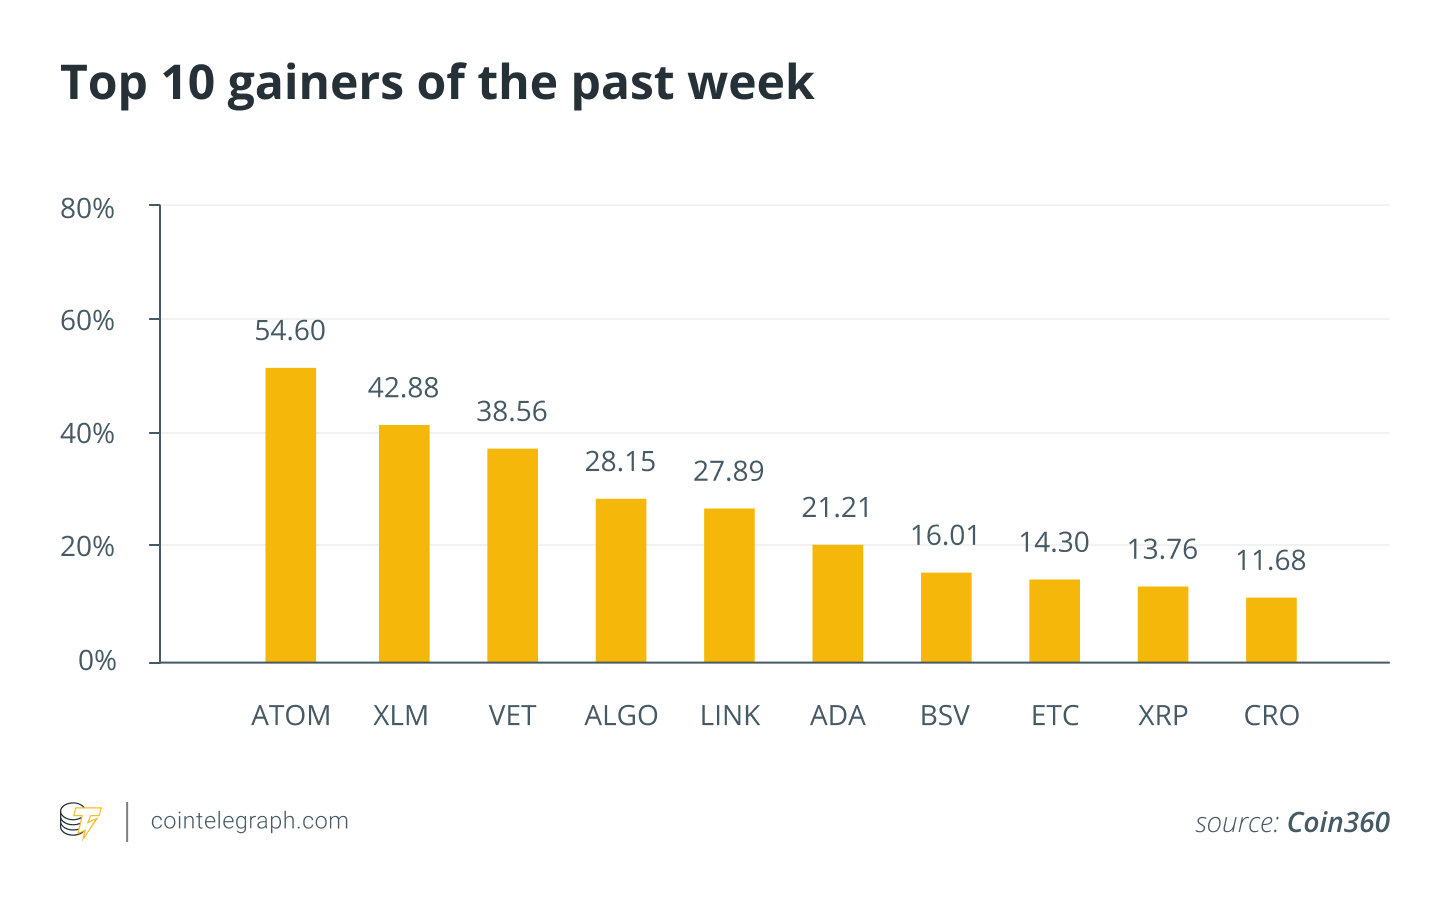 Top 10 gainers of the past week